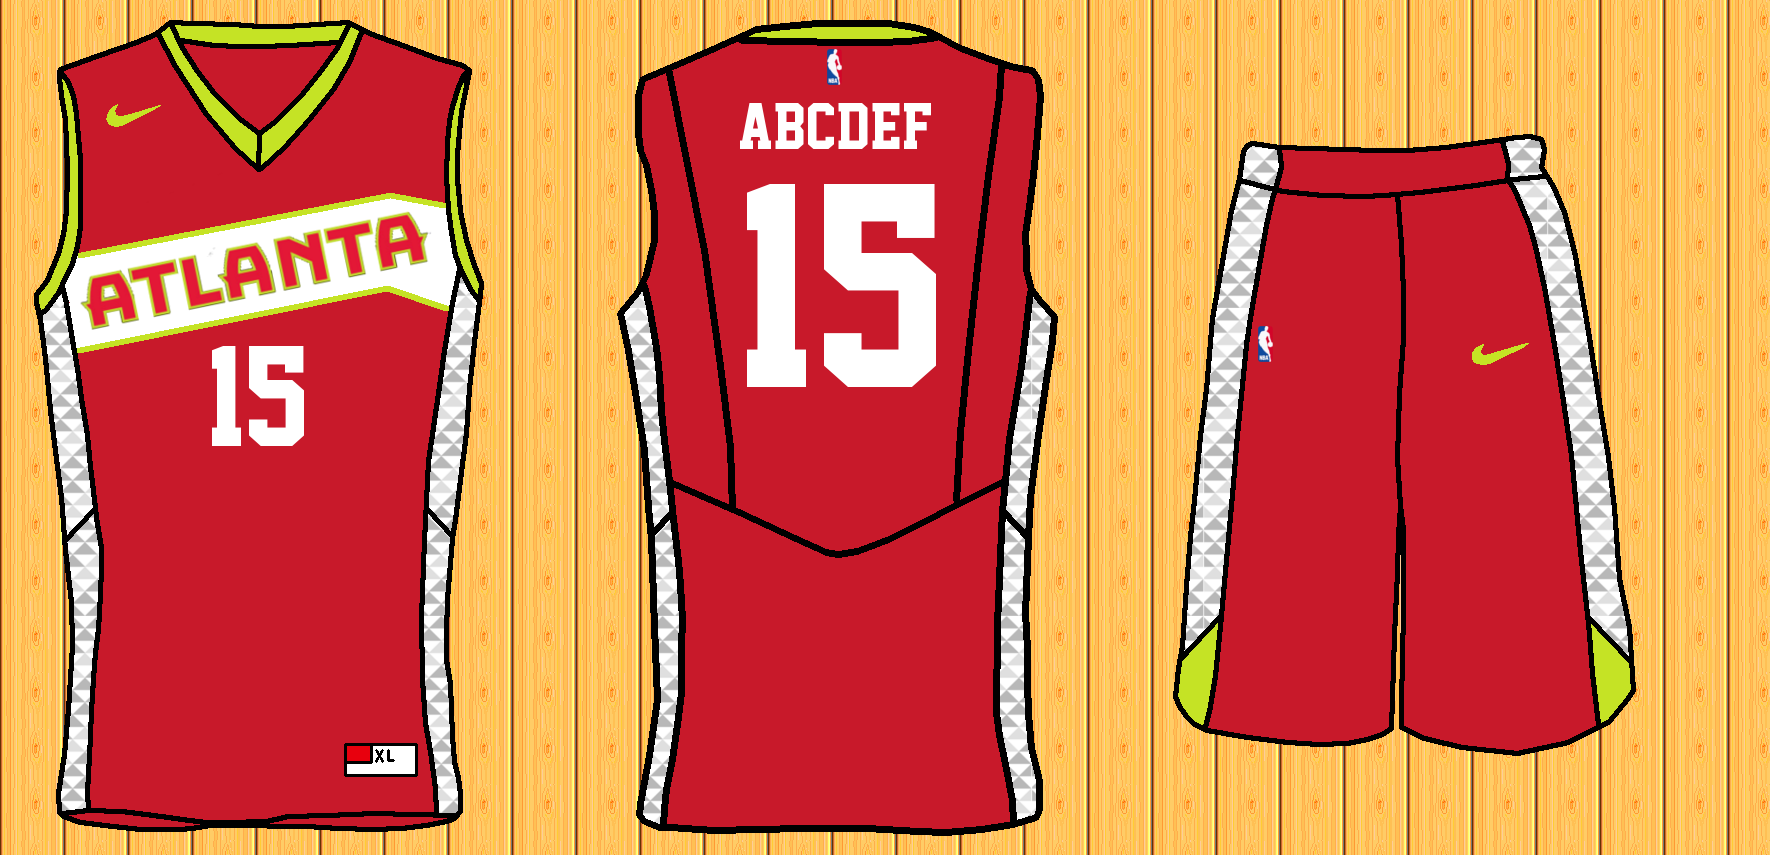 new styles d7498 3ffd9 Revamping NBA Throwback Jerseys (Bulls Added) - Concepts ...